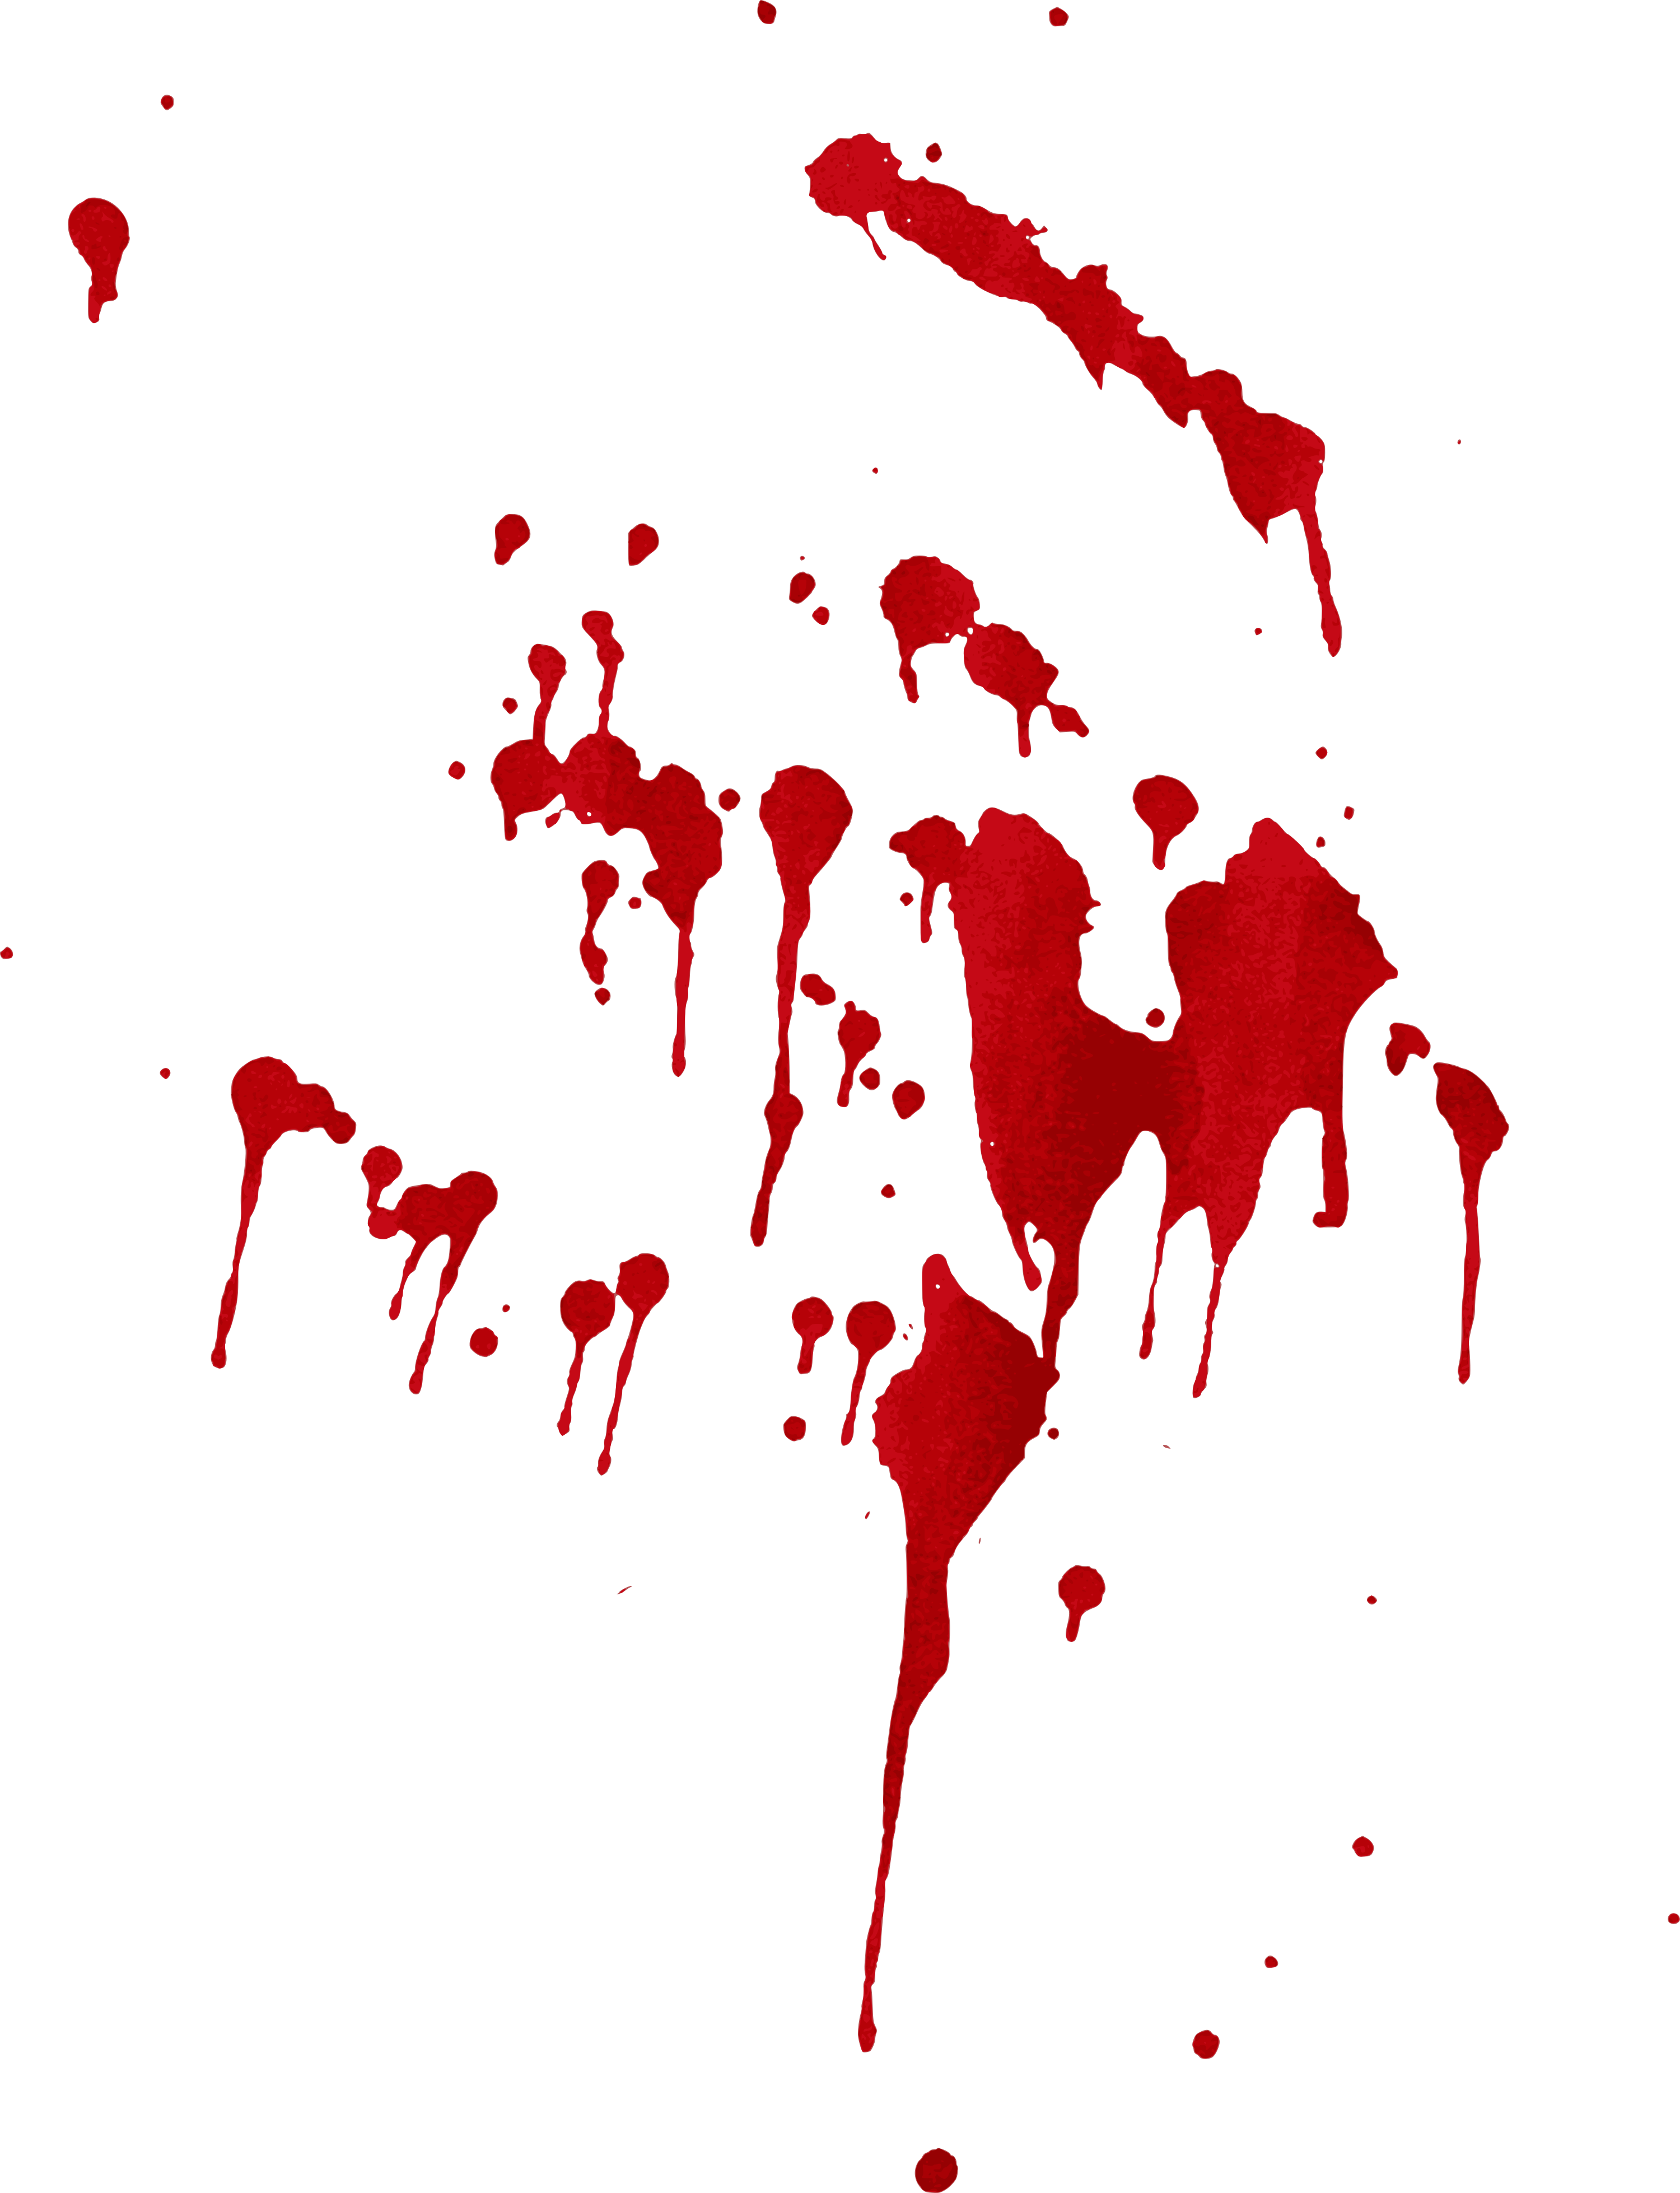 Blood Splatter Texture Png : Blood sprays, puddles, smears, splatters and more.